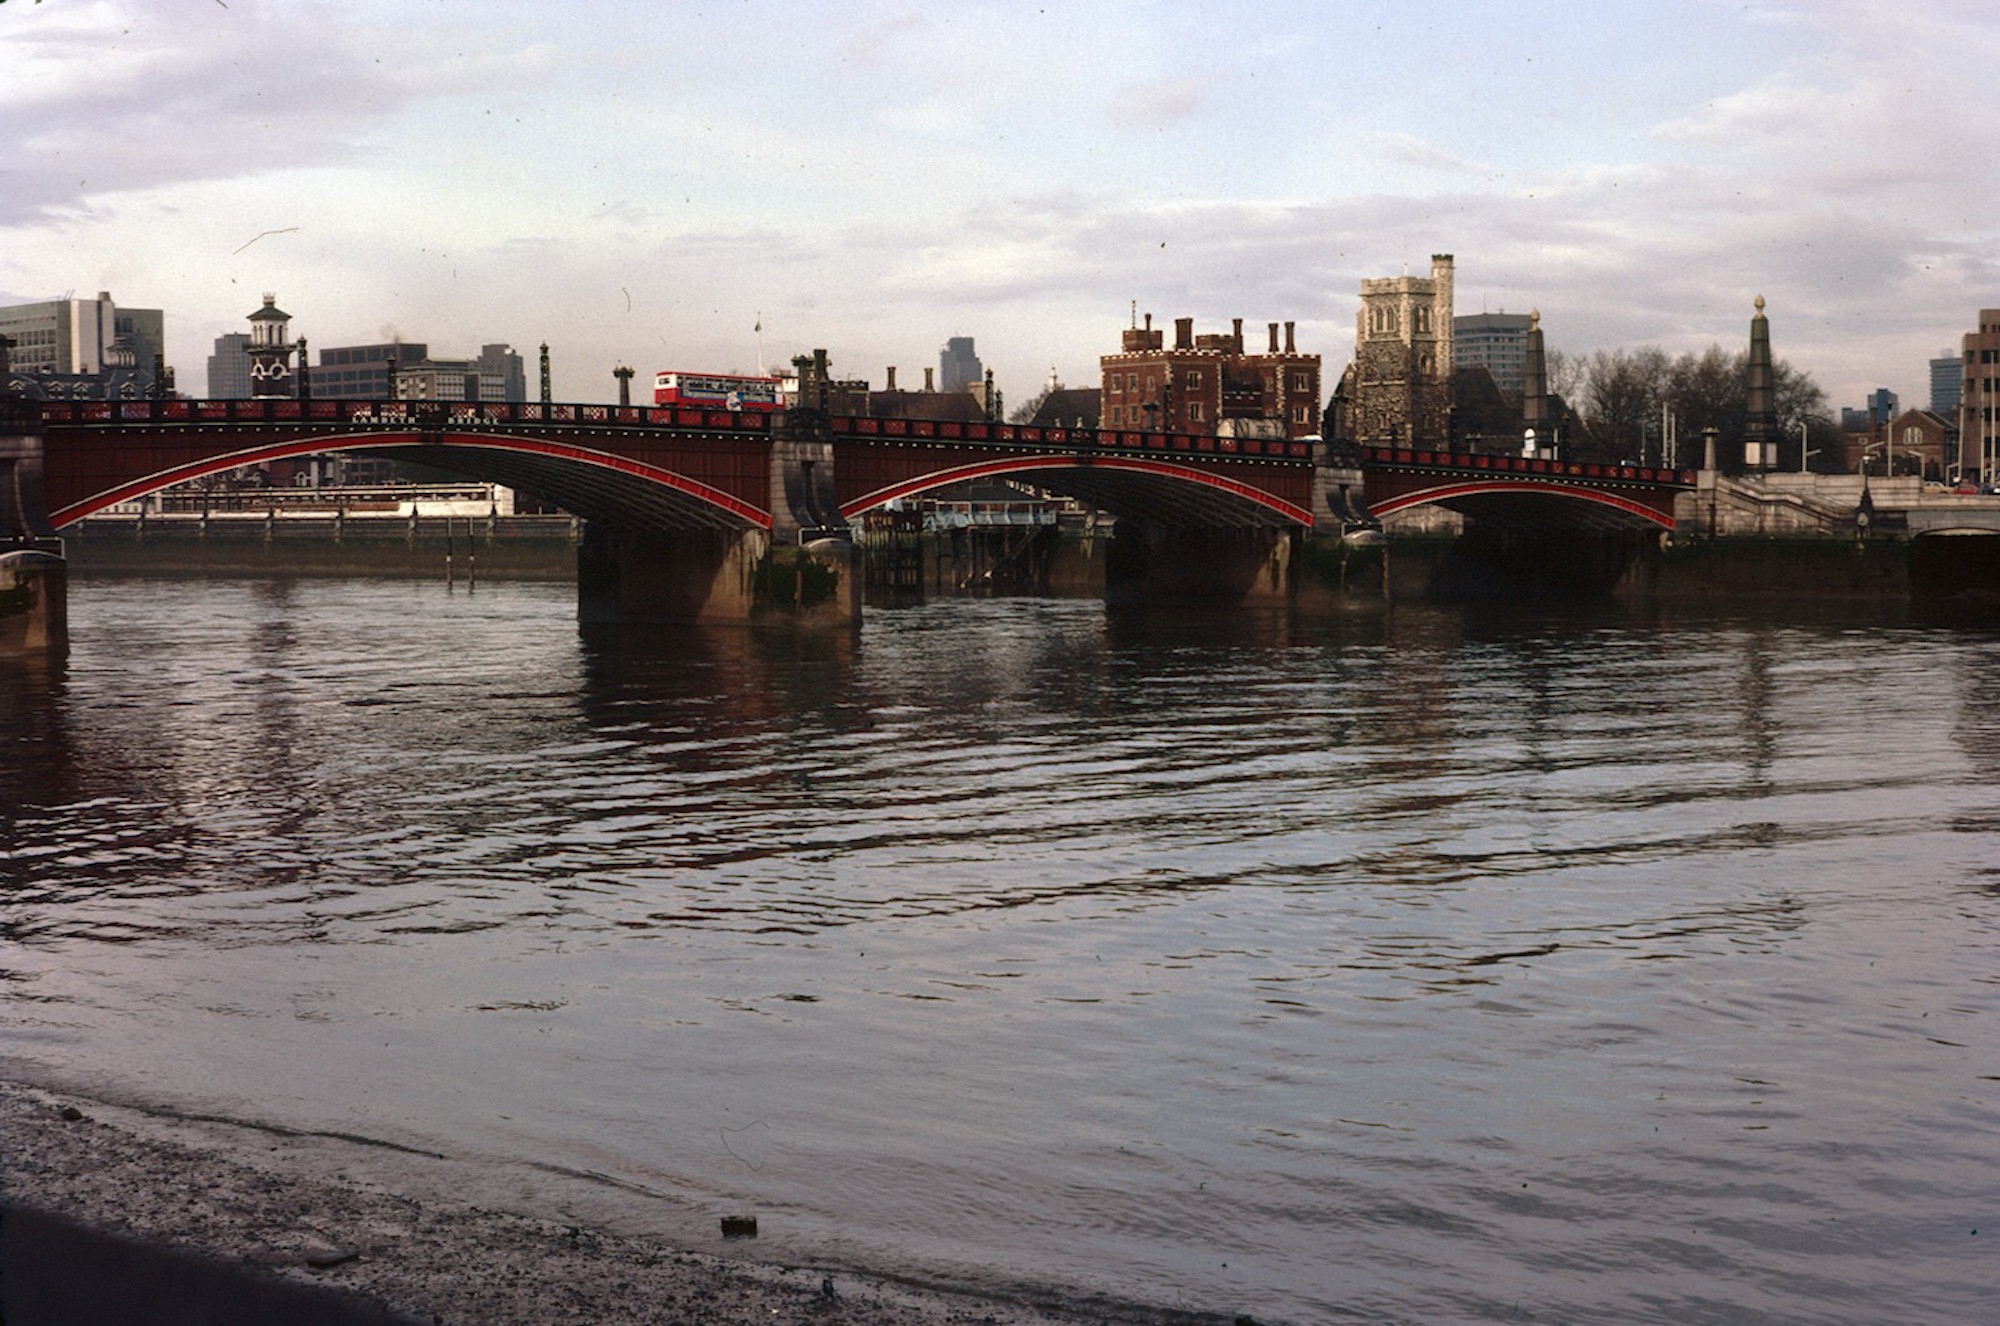 London 1979 Blackfriars brdige